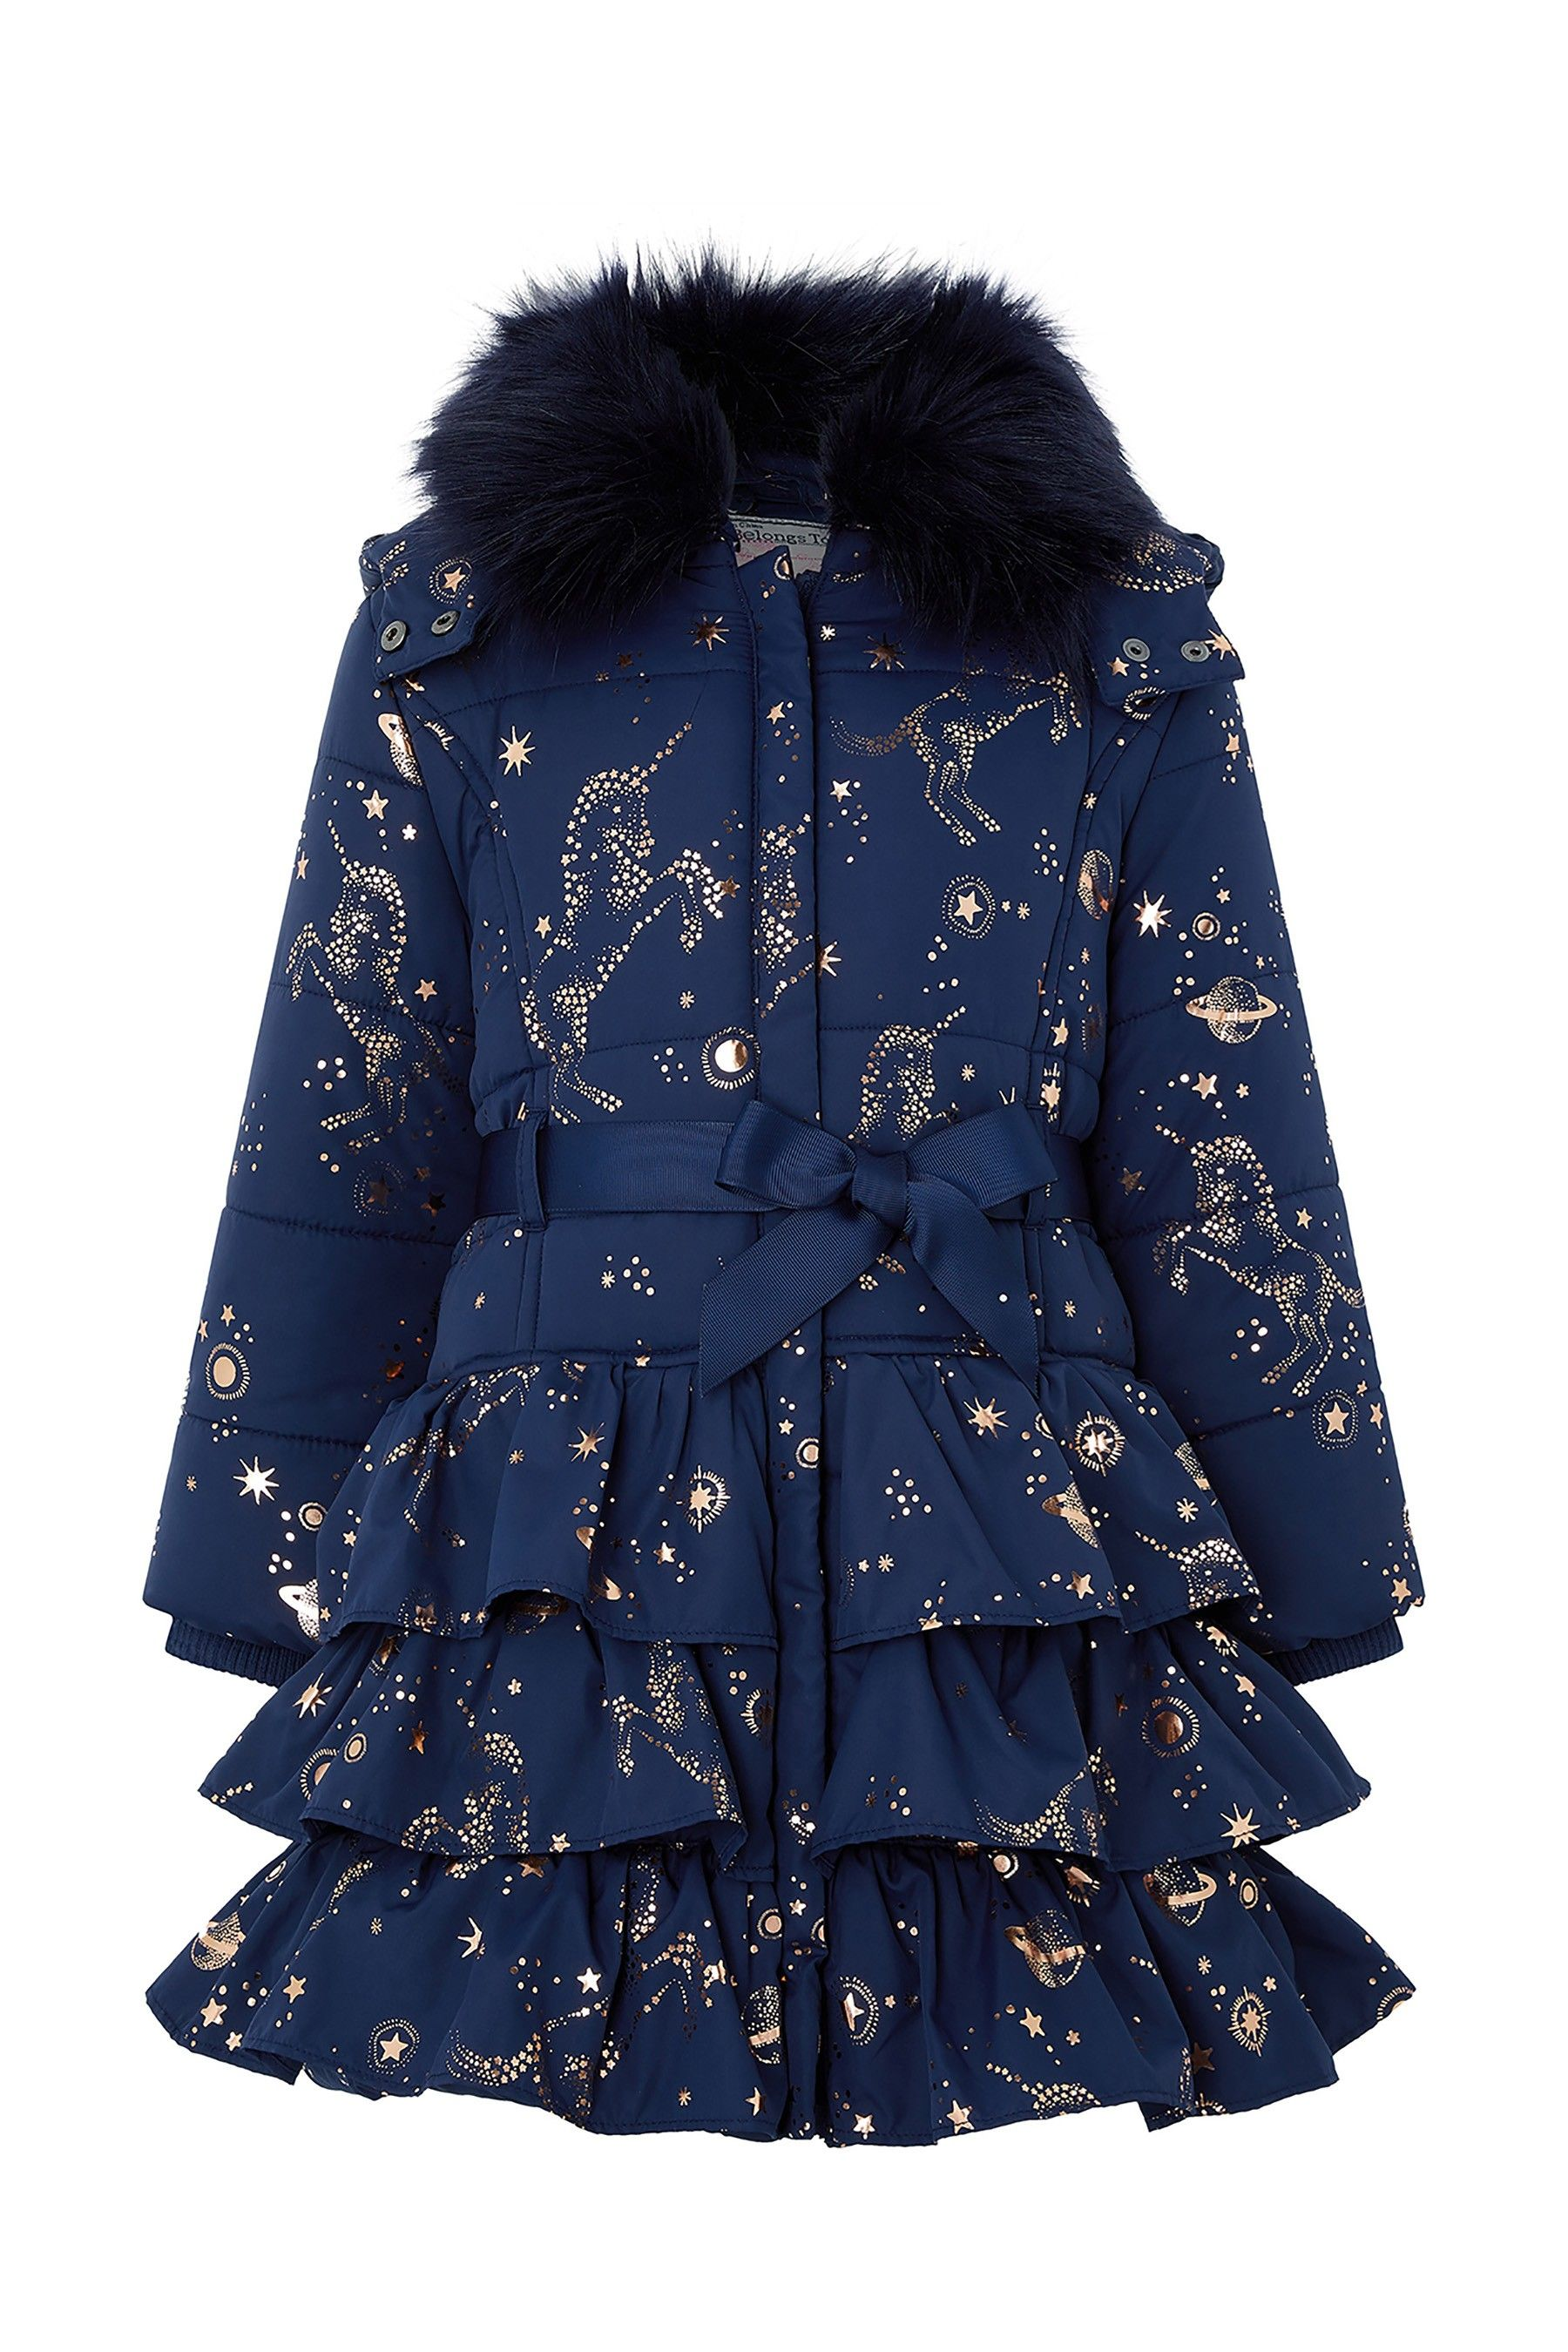 df938c22 Girls Monsoon Navy Gemini Unicorn Padded Coat - Blue in 2019 ...